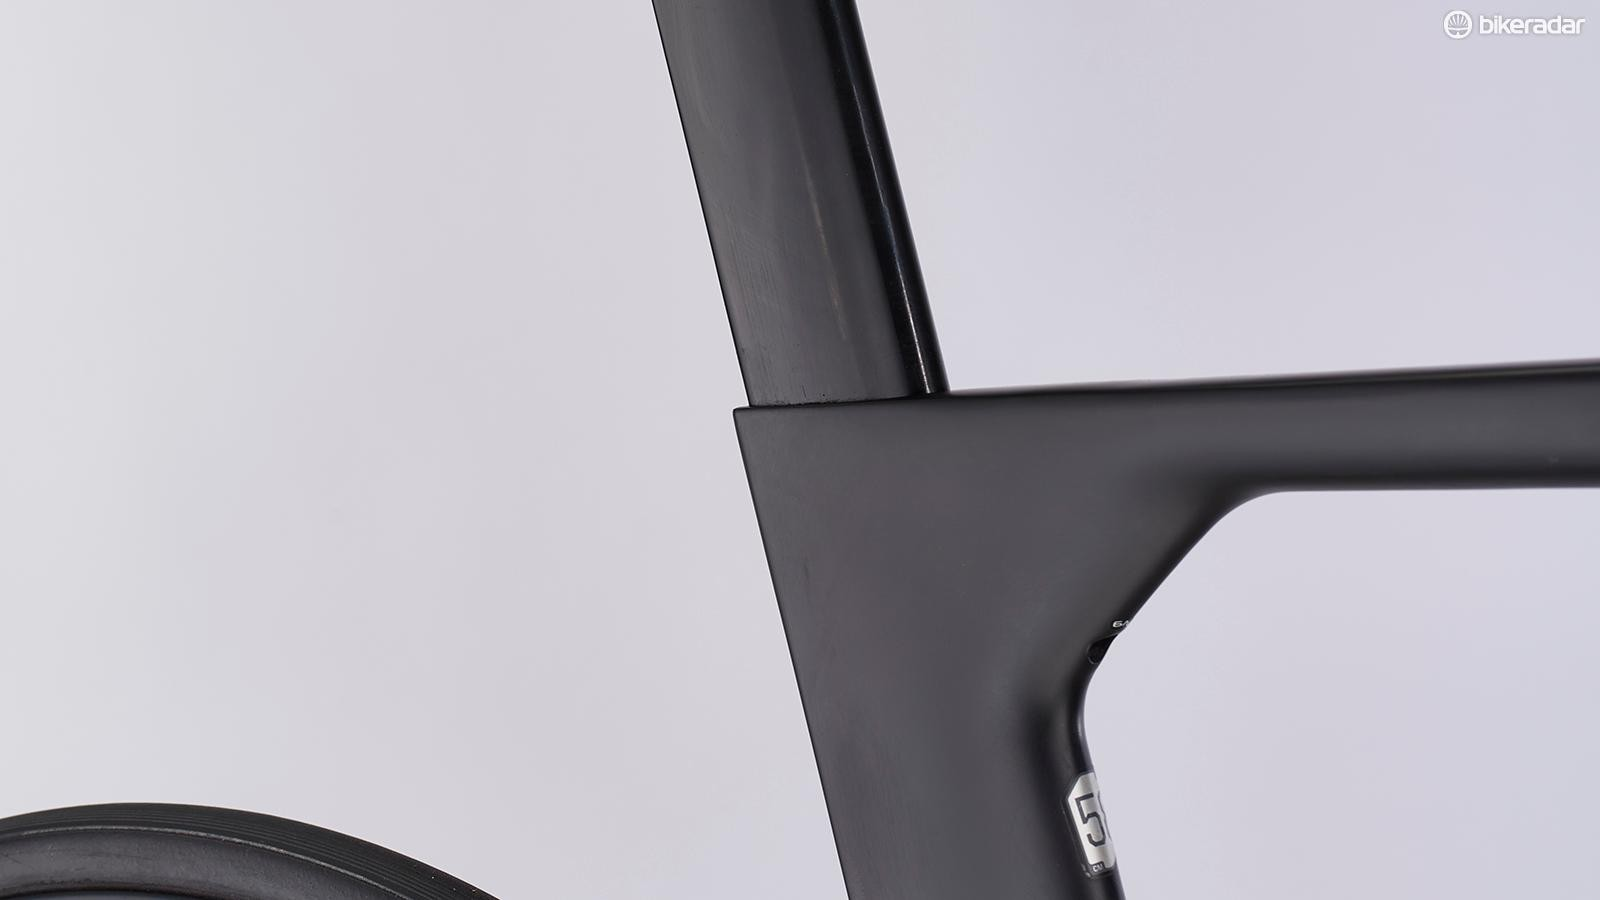 The top tube seat tube junction and the seatpost itself were all designed with the rider in situ